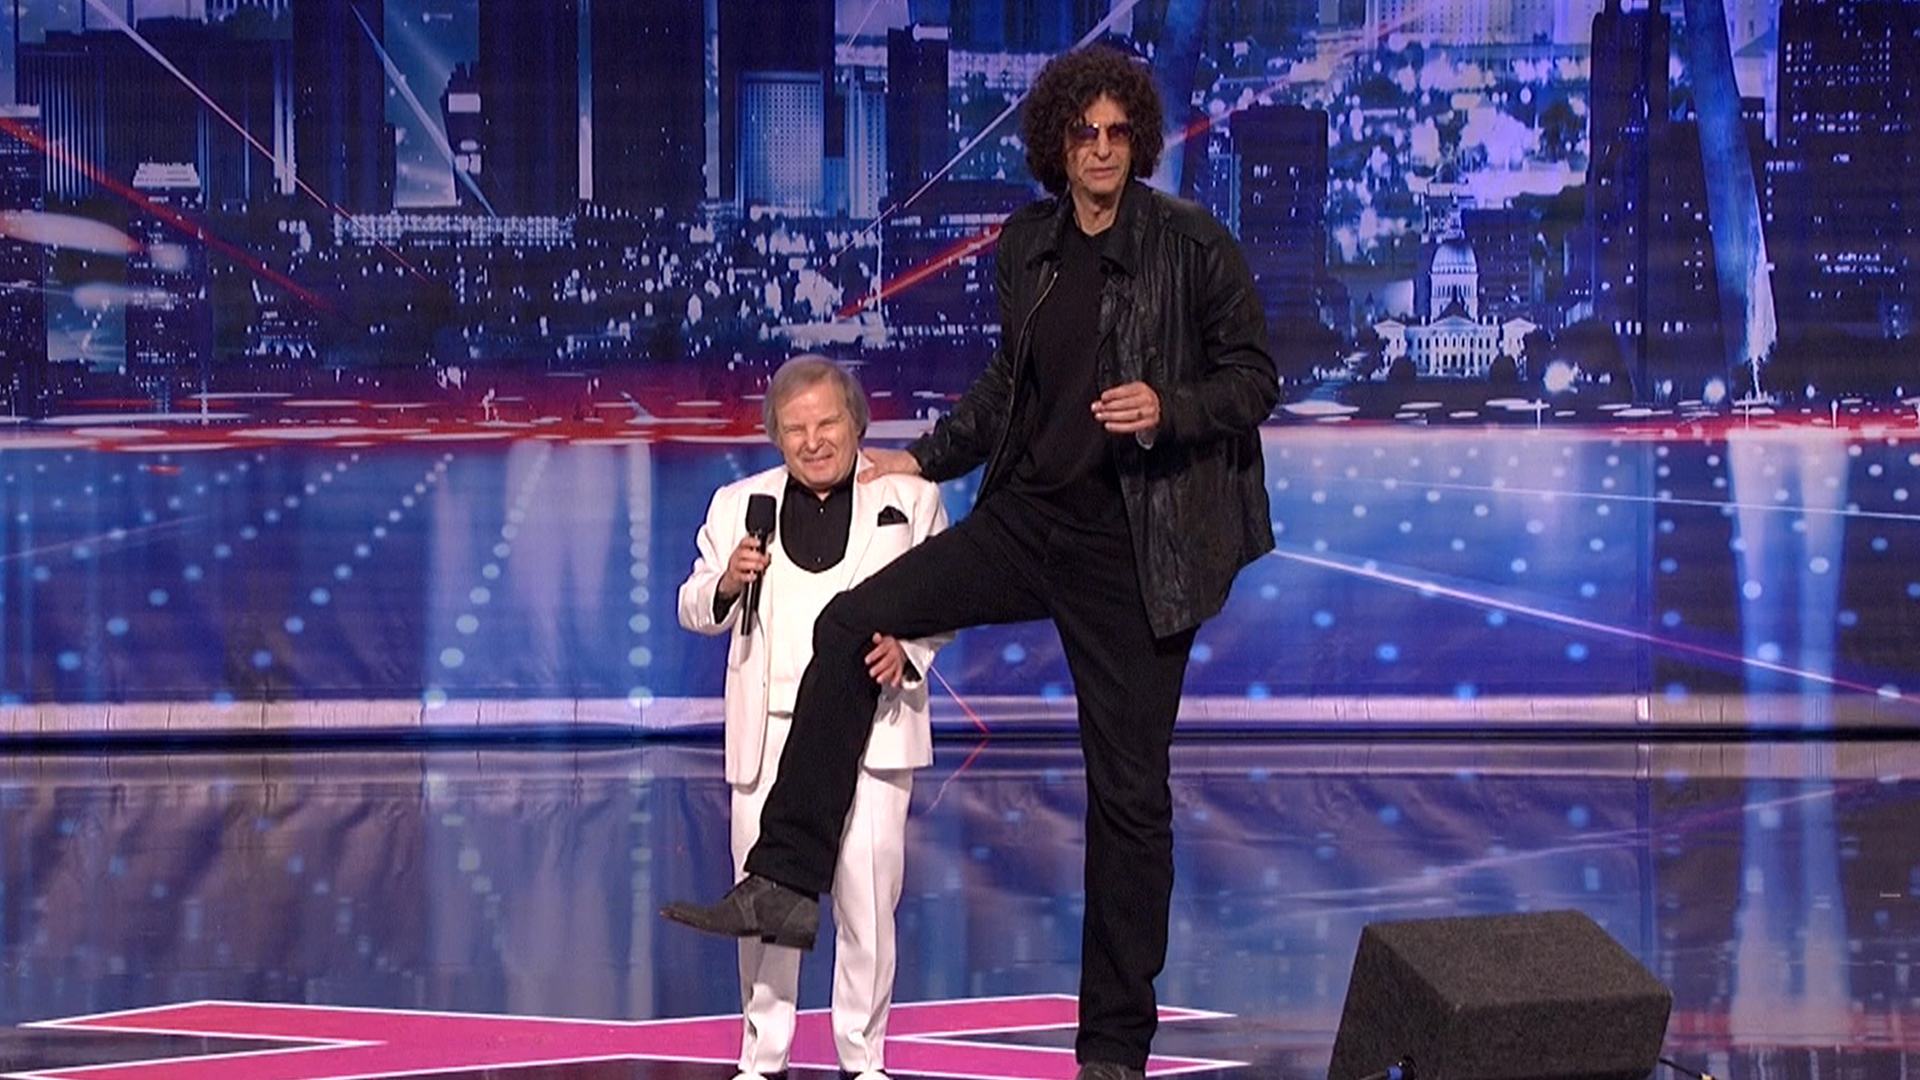 Howard Stern: I'm leaving 'America's Got Talent'